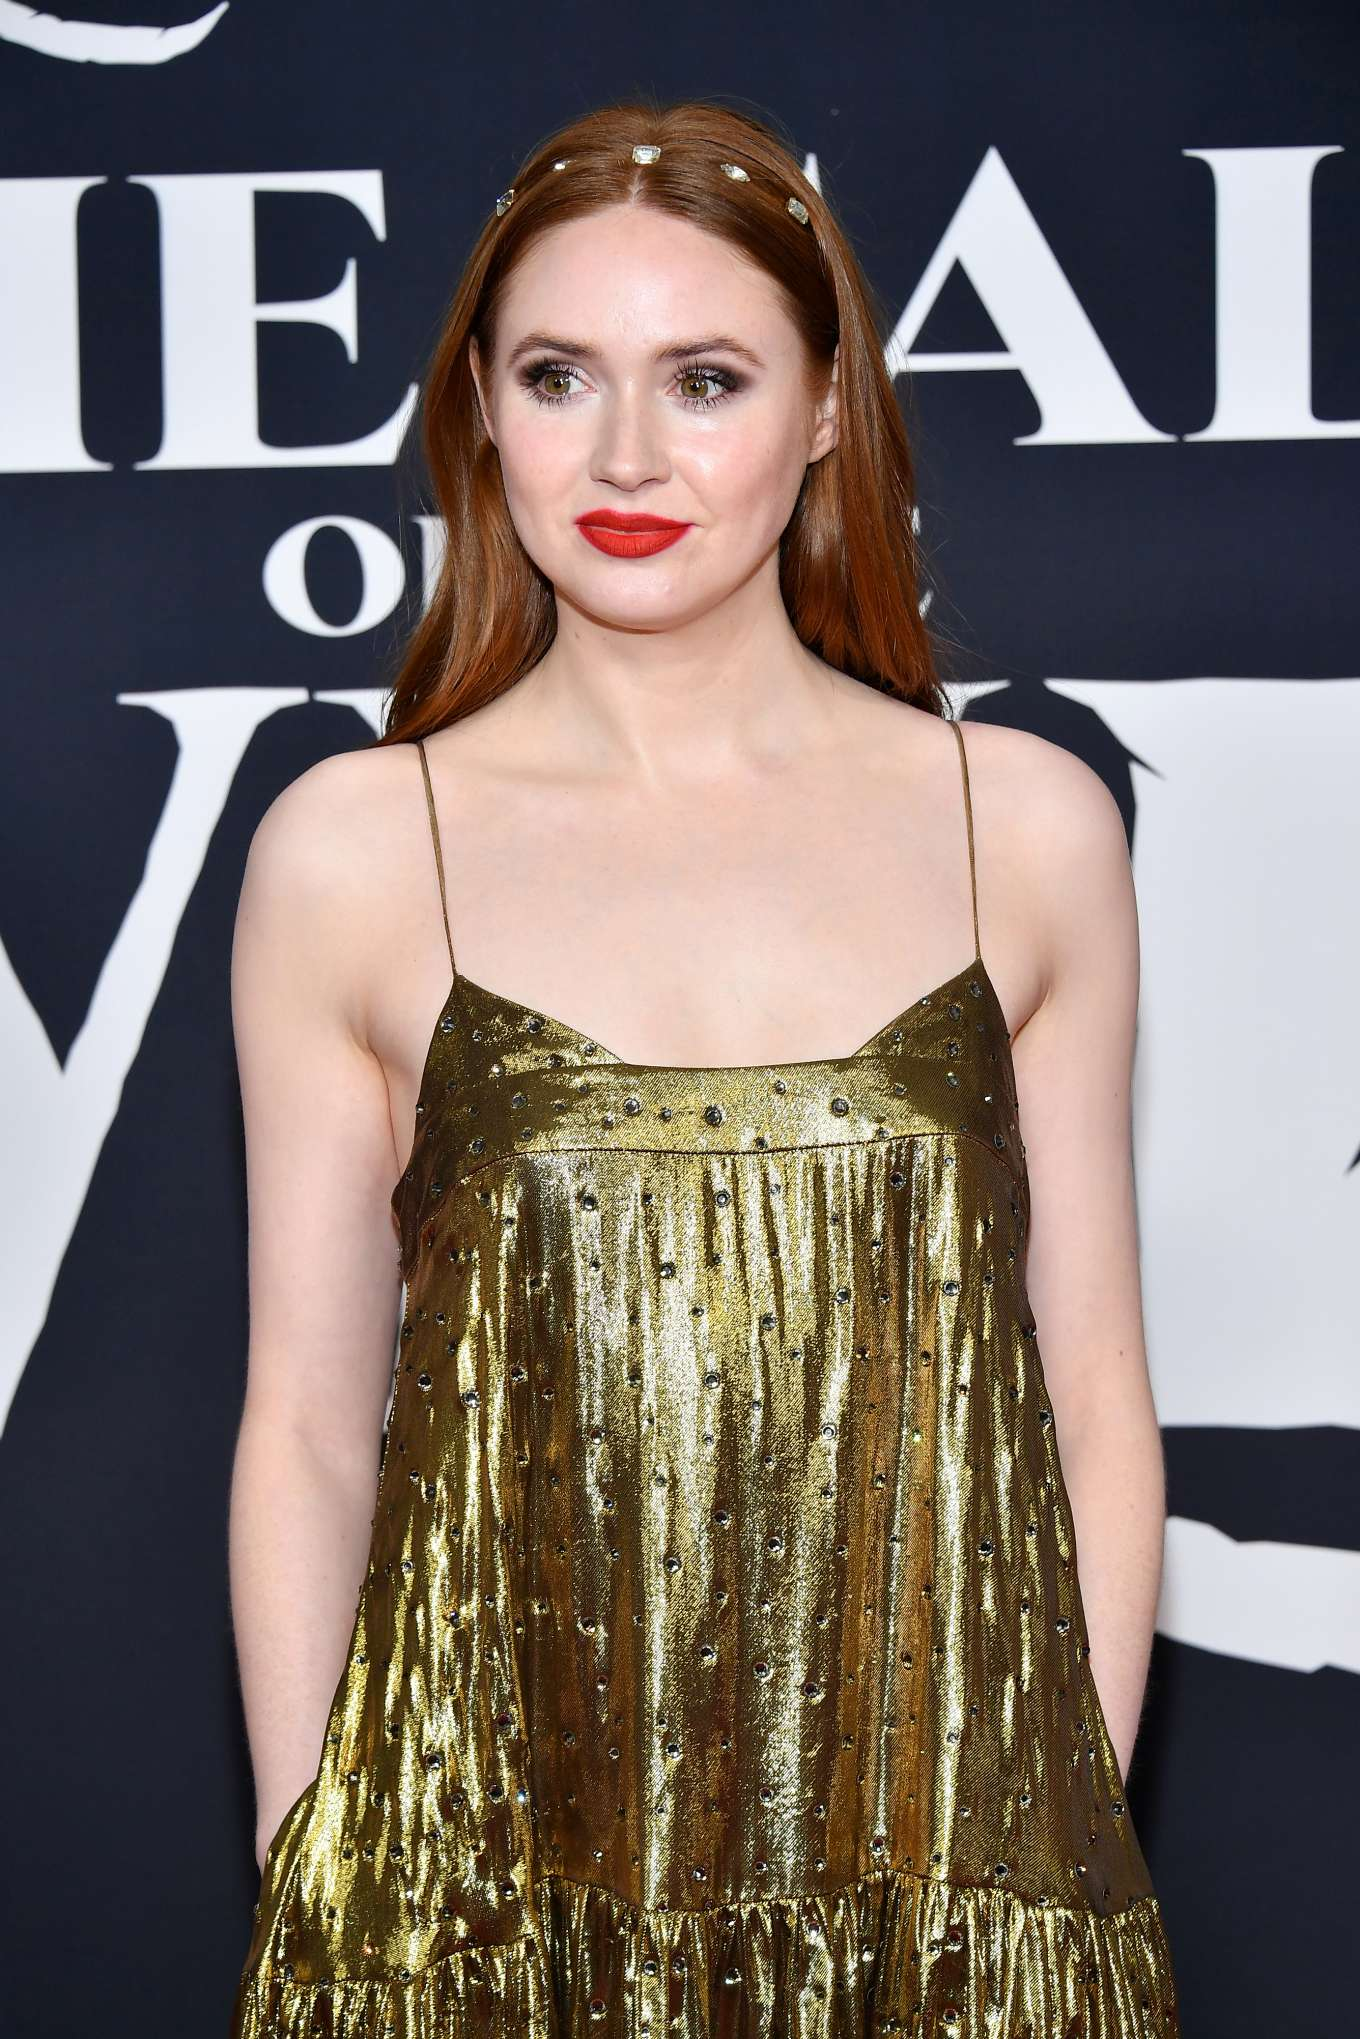 Karen Gillan - 'The Call Of The Wild' premiere in Los Angeles